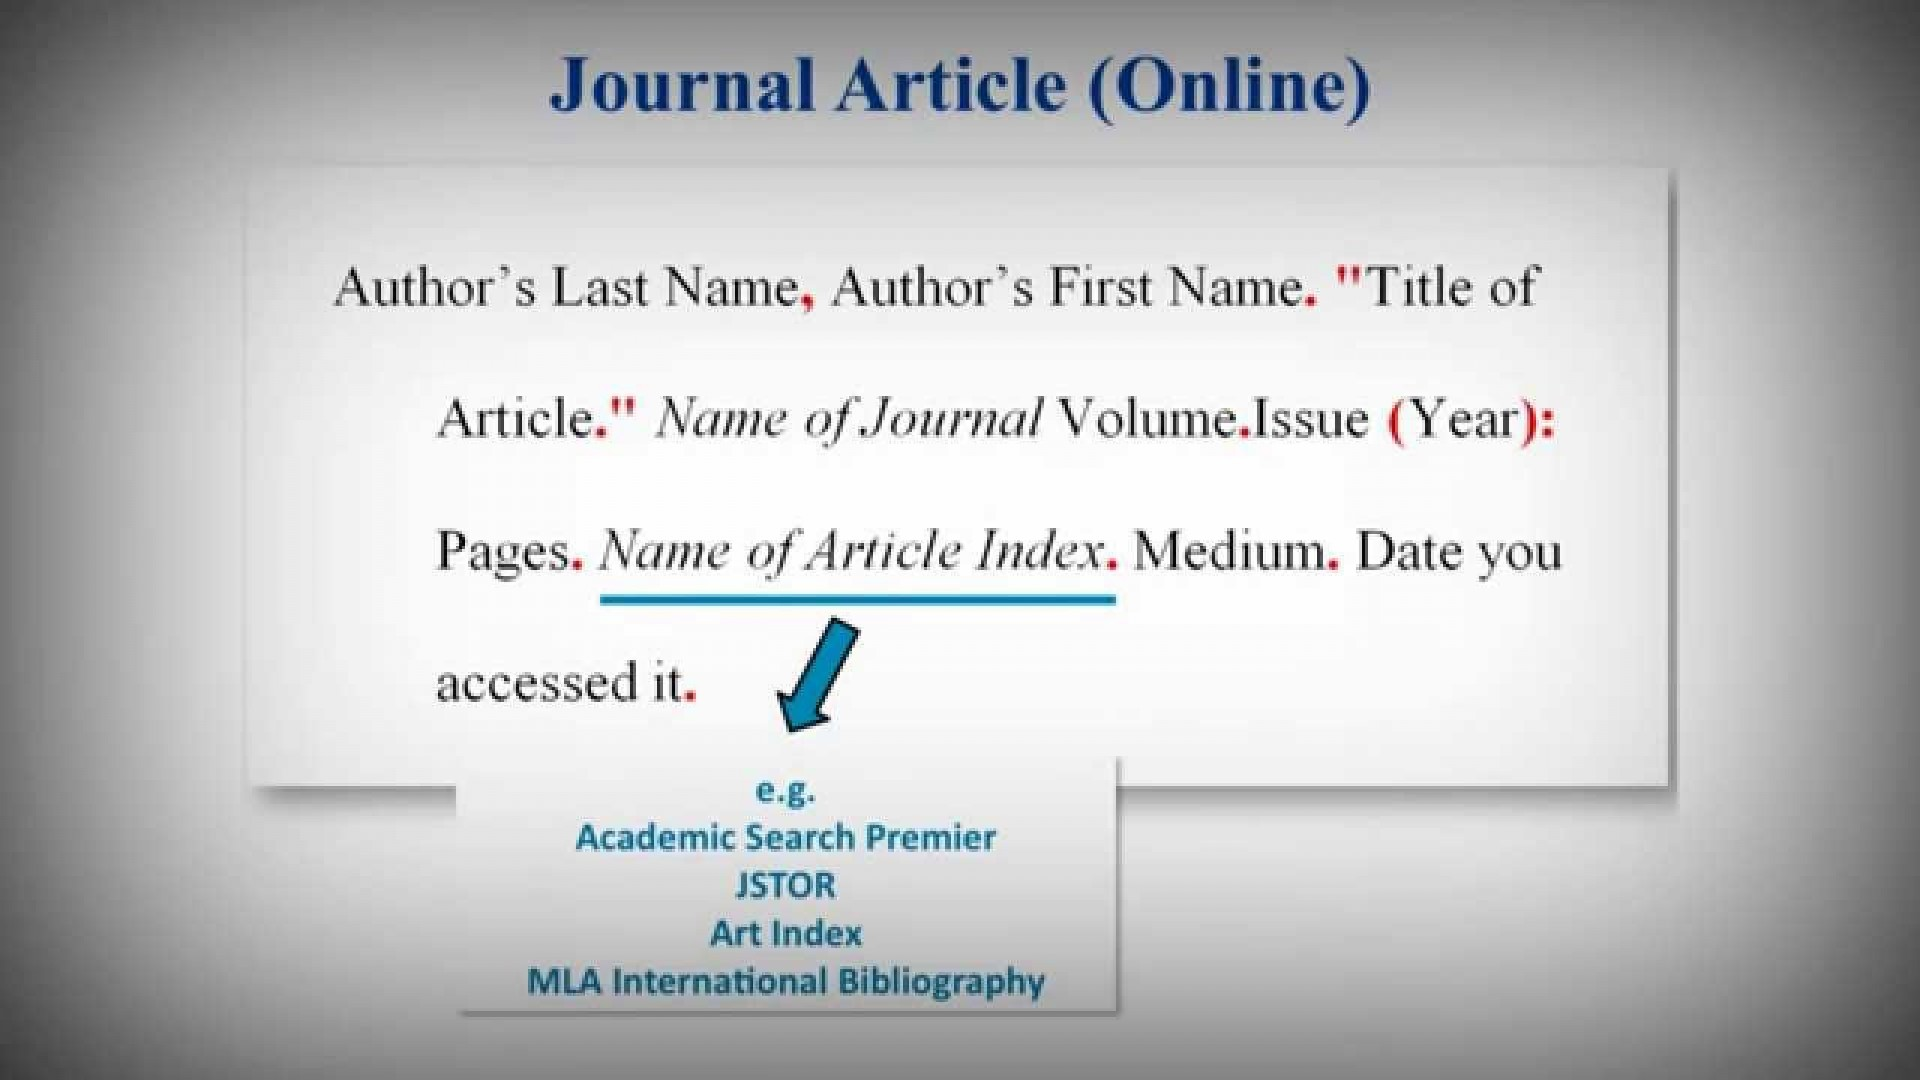 017 Maxresdefault How To Cite Articles In Essay Singular References Apa Paper Article Name A Newspaper Your 1920